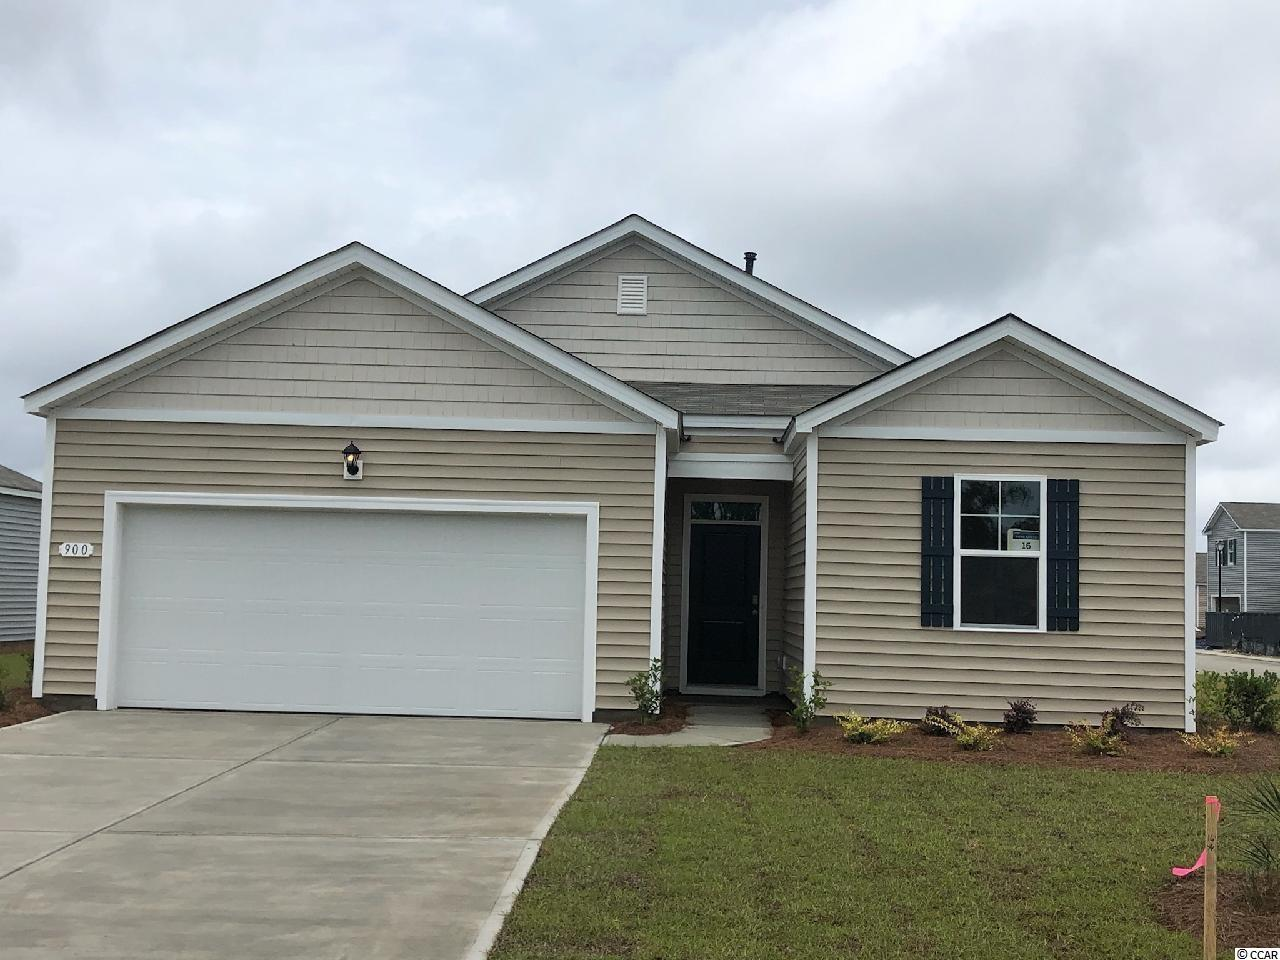 """Oyster Bluff is now selling! Brand new natural gas community just minutes away from shopping, dining, and the beach. Why pay rent? This Macon floorplan offers three bedrooms all on one level. Private primary bedroom suite with a big walk-in closet and en suite bath with dual vanity and 5 ft. shower! Nice, open flow between kitchen and living areas is great for entertaining around the large breakfast bar while low maintenance laminate flooring gives the look of wood with easy care and cleanup! Granite counters in the kitchen, 36"""" white painted cabinetry, stainless Whirlpool appliances, and a great size pantry. Sliding glass doors off the dining area lead to the back yard with pond views. It gets better- this is America's Smart Home! Control the thermostat, front door light and lock, and video doorbell from your smartphone or with voice commands to Alexa. Tankless gas water heater and a two-car garage with garage door opener also included.   *Photos are of a similar Macon home. (Home and community information, including pricing, included features, terms, availability and amenities, are subject to change prior to sale at any time without notice or obligation. Square footages are approximate. Pictures, photographs, colors, features, and sizes are for illustration purposes only and will vary from the homes as built. Equal housing opportunity builder.)"""